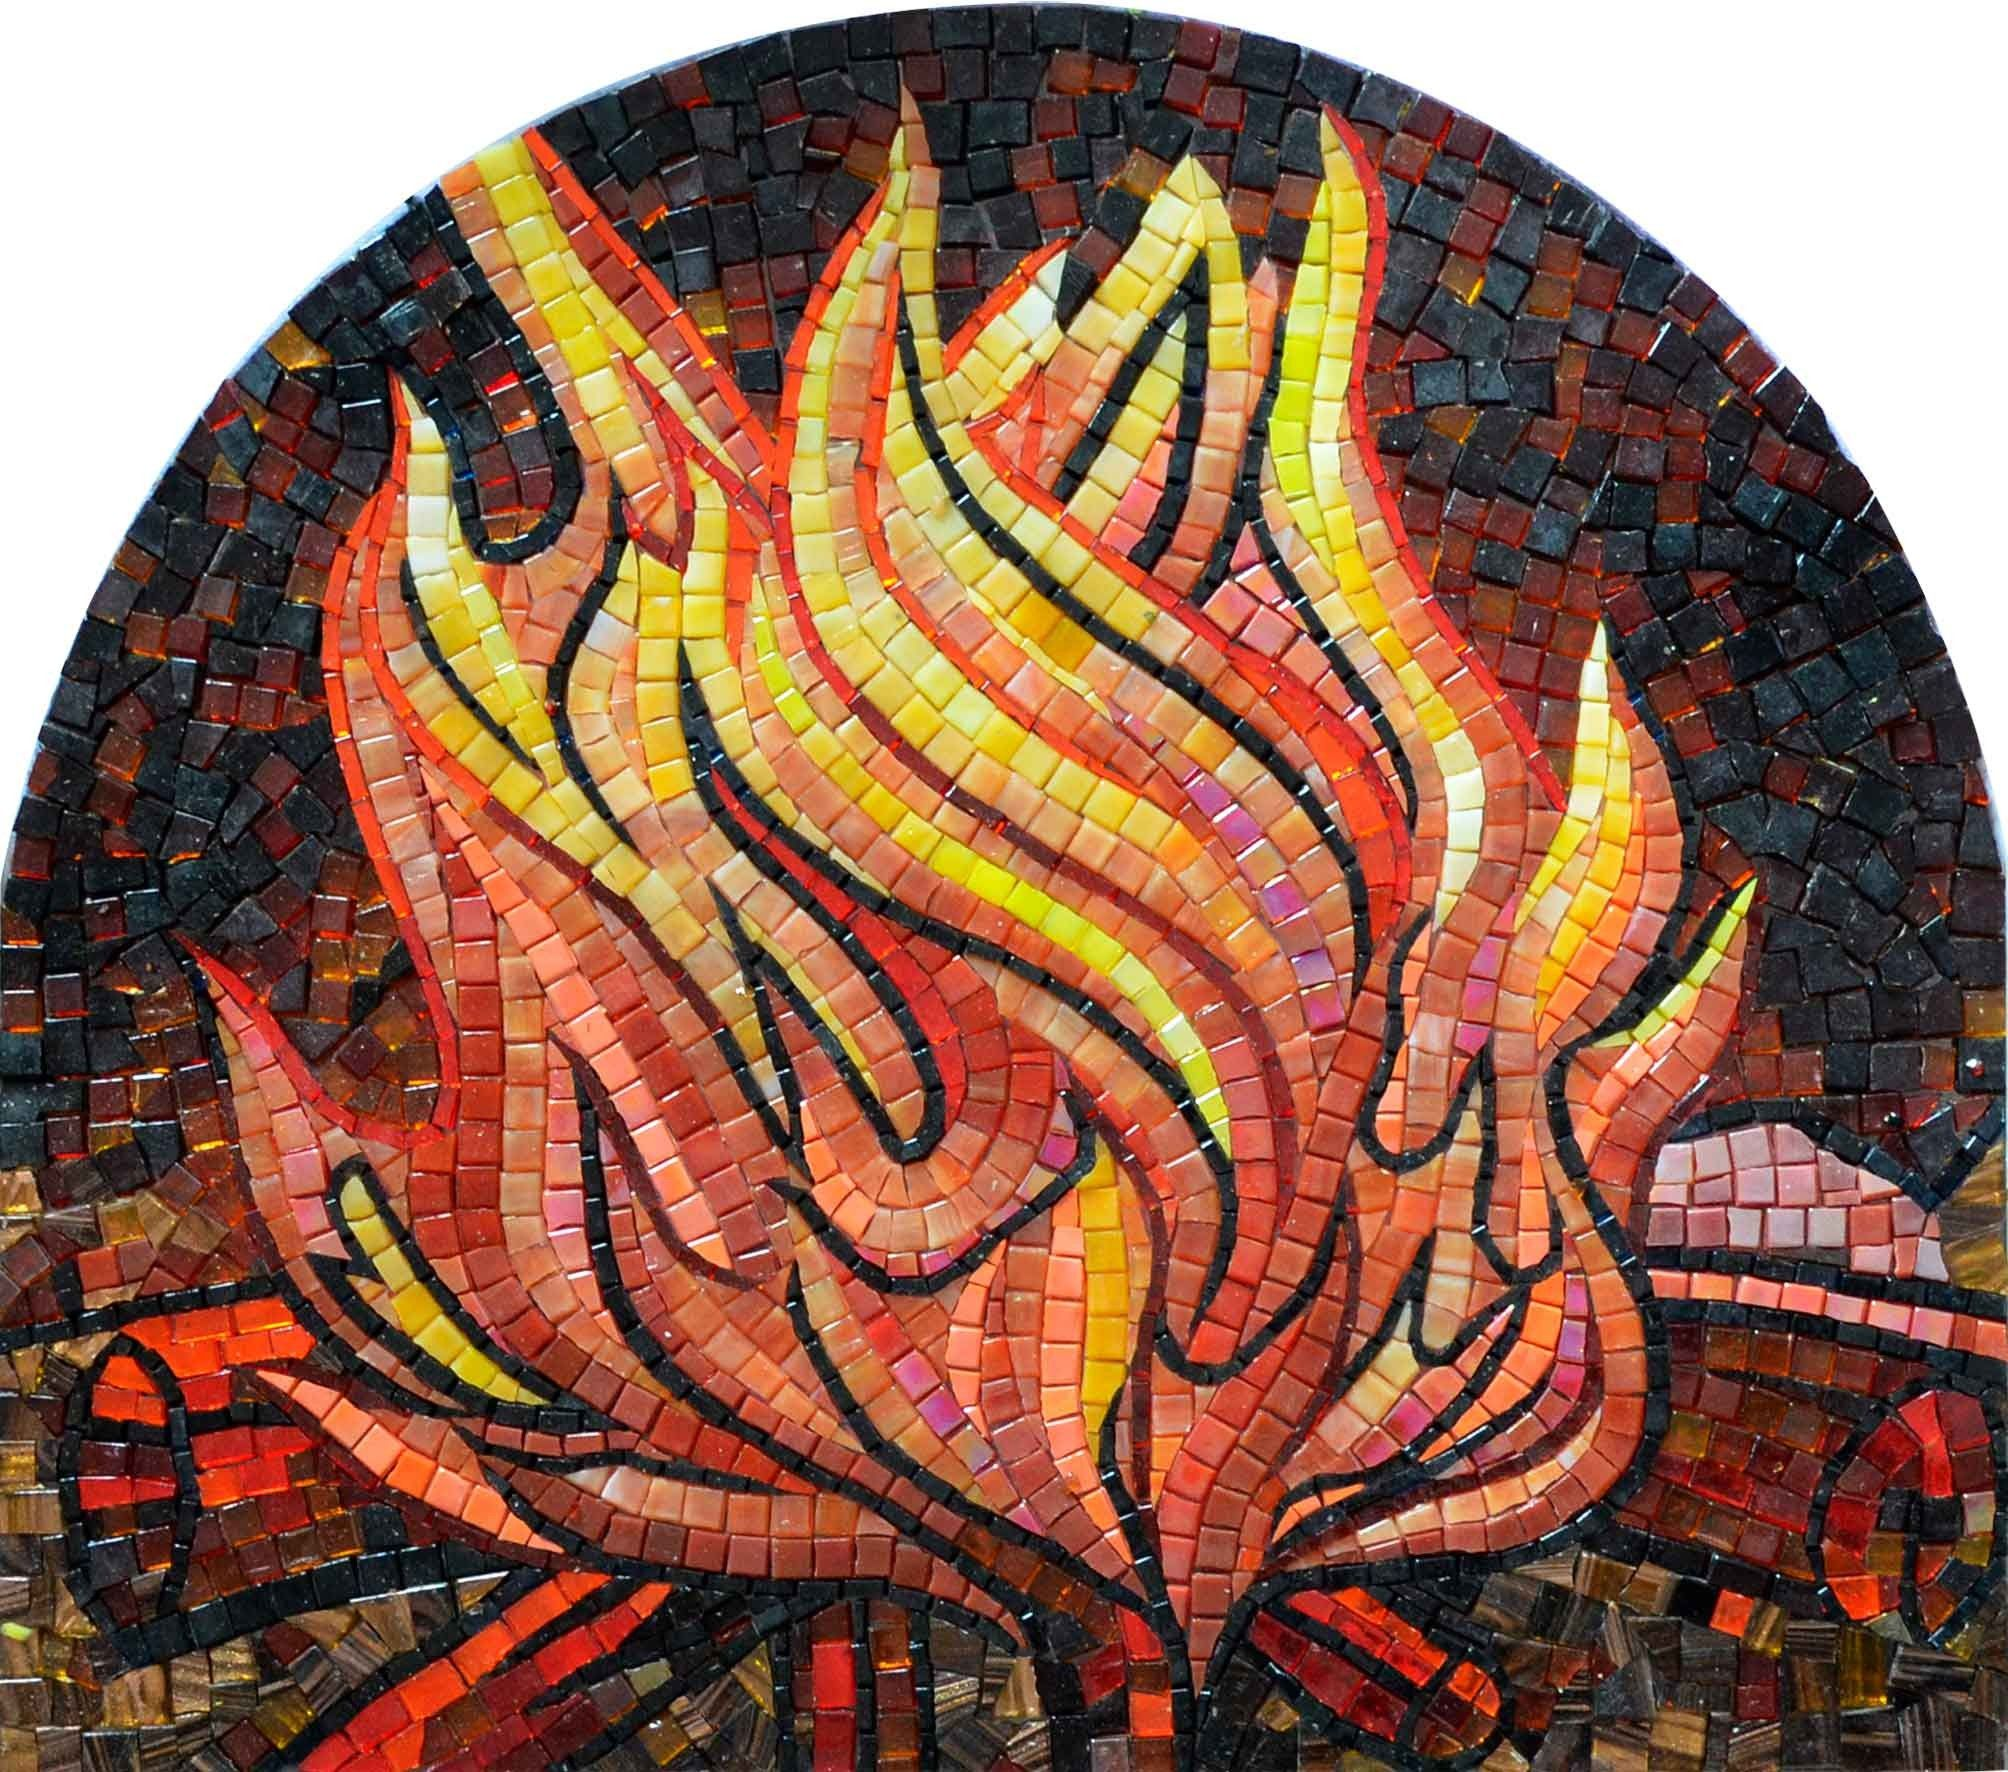 Sold custom made butterfly mosaic table top for mary ann in texas - Mosaic Patterns Fire Flame